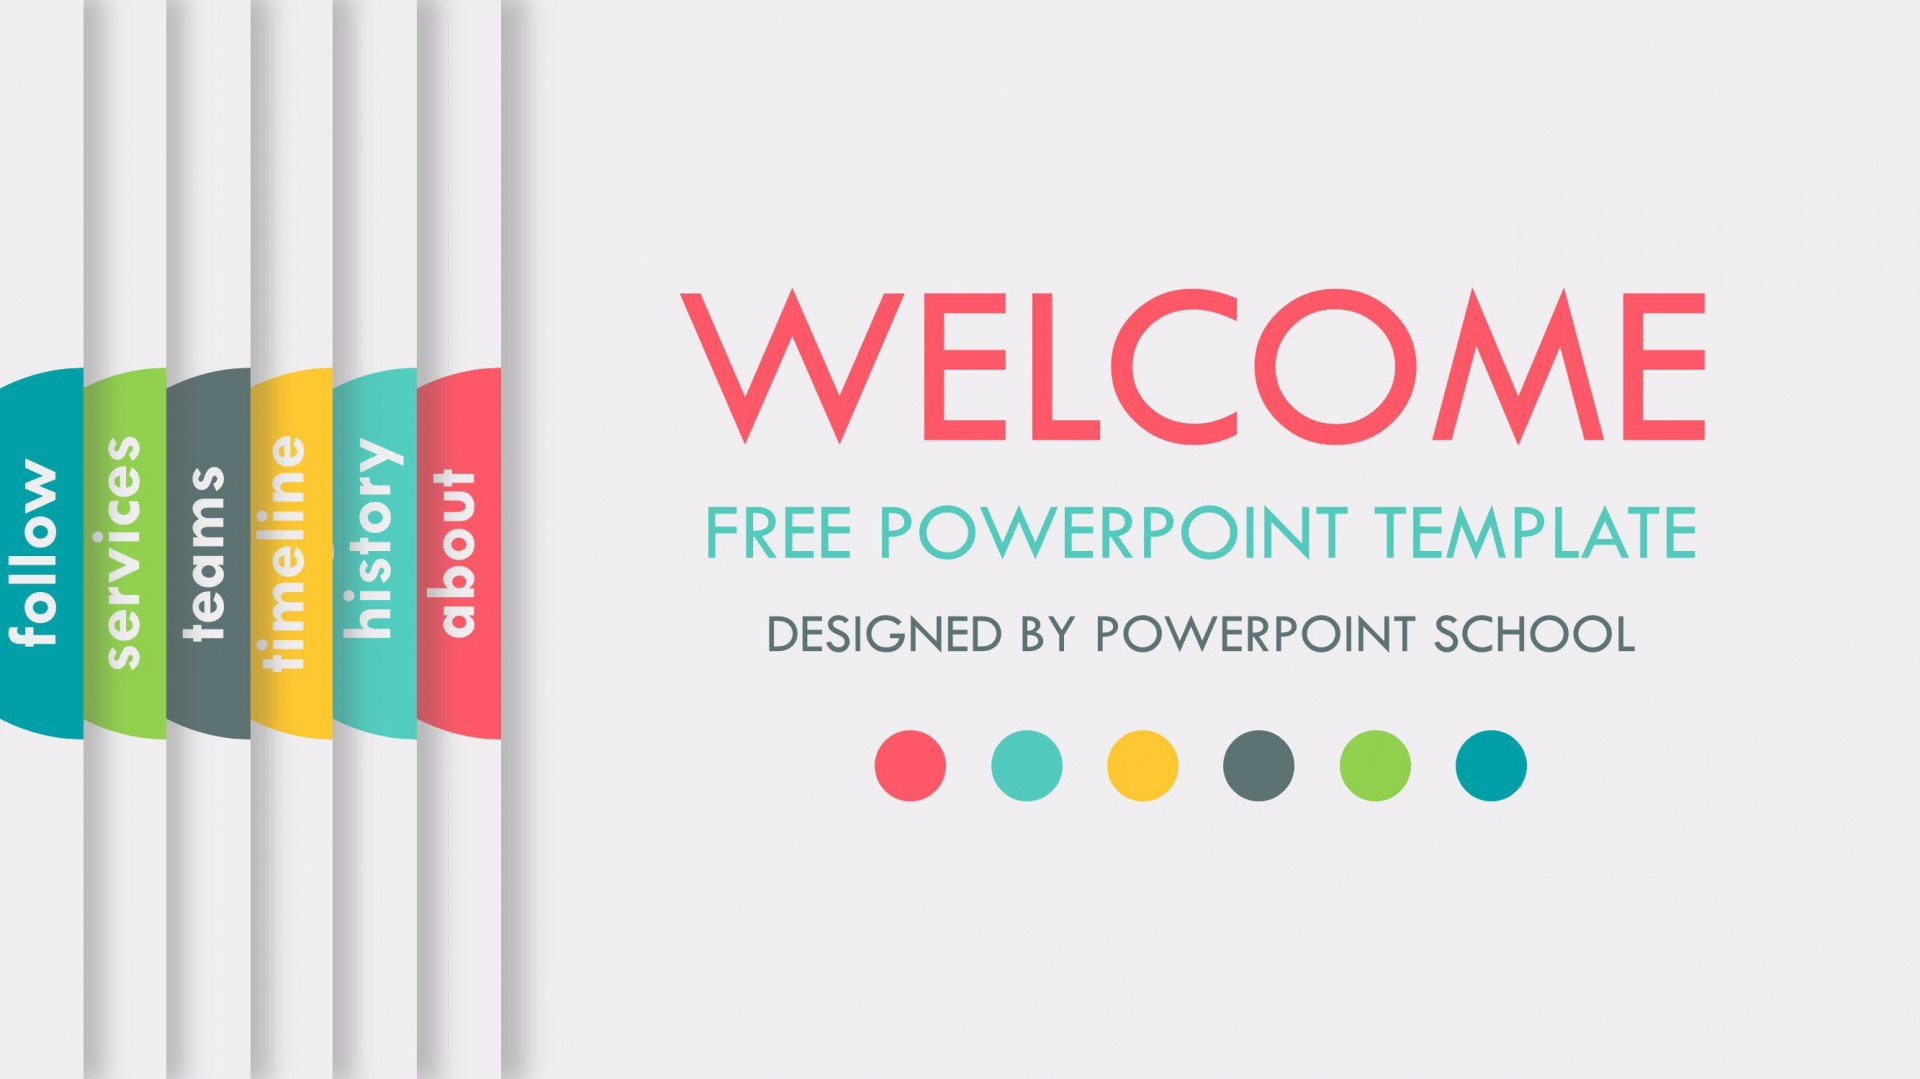 004 Frightening Animation Powerpoint Template Free Highest Clarity  Animated Download 2019 20101920